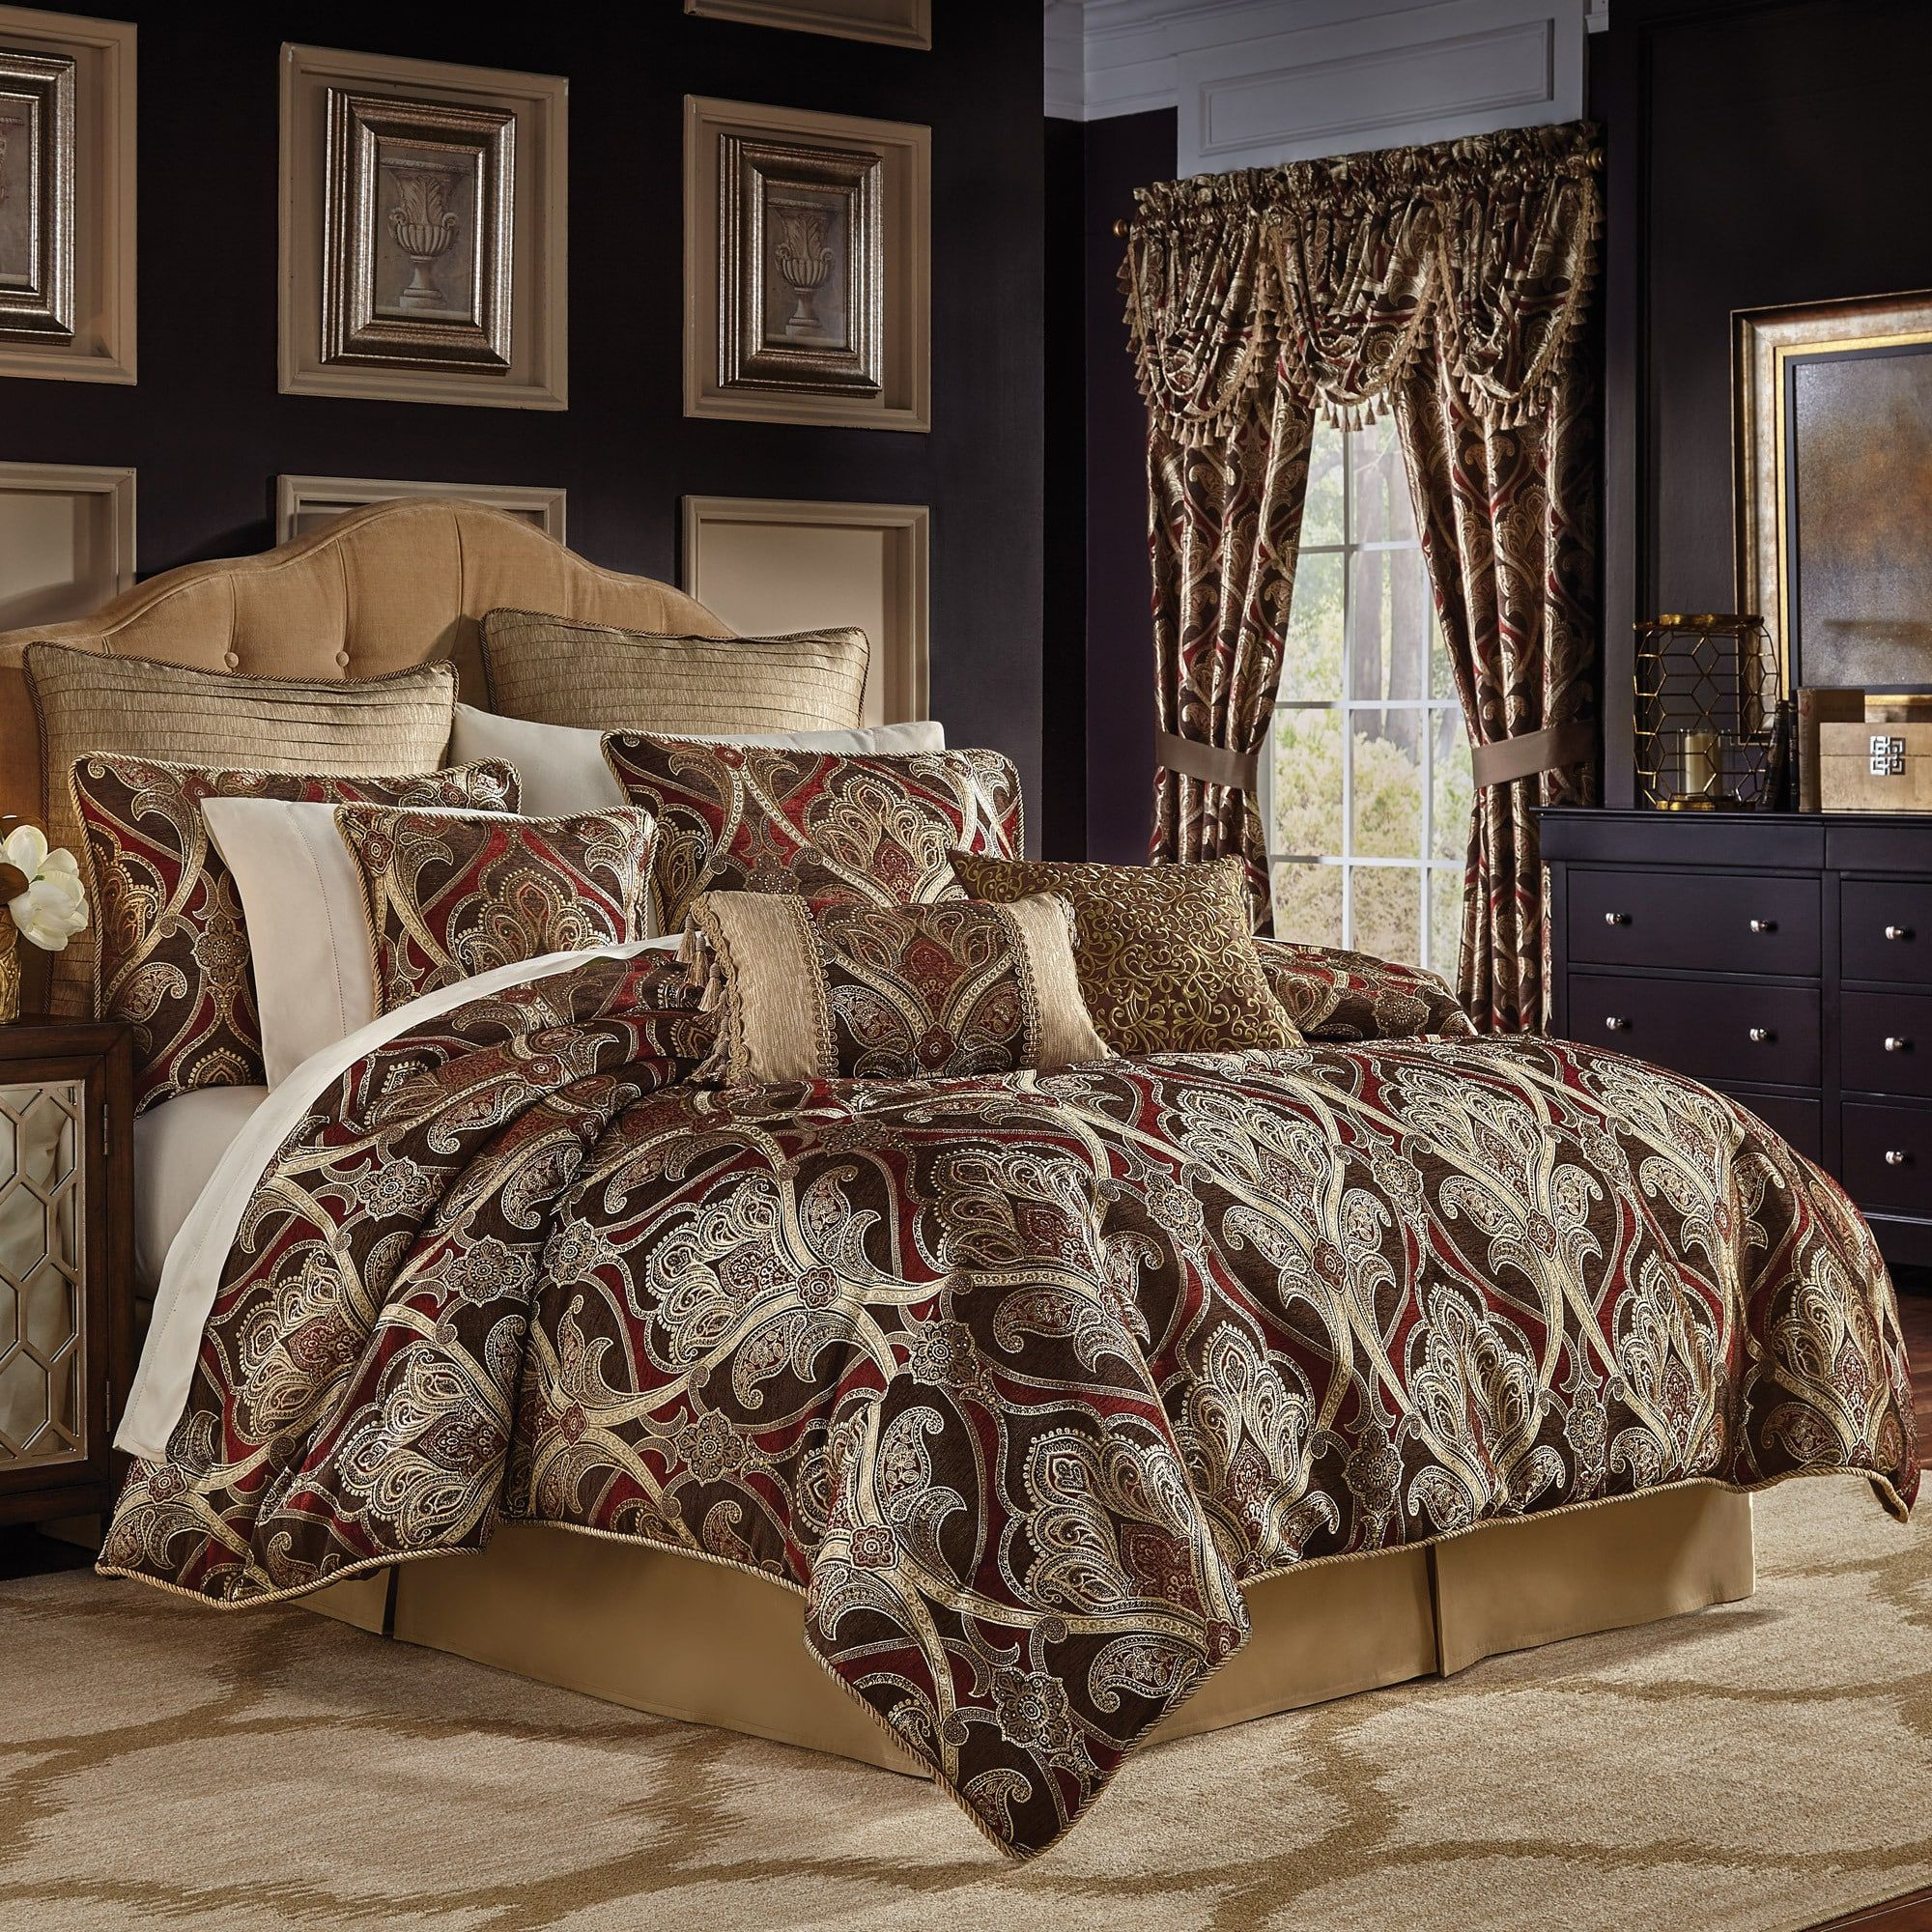 croscill clearanceclearance decor of fantastic rustic queen bedsbedding fantasticets comforters comforter for bedding photo onrance full size queenize with jcpenney sets jcp clearance ideas sizeranceclearance